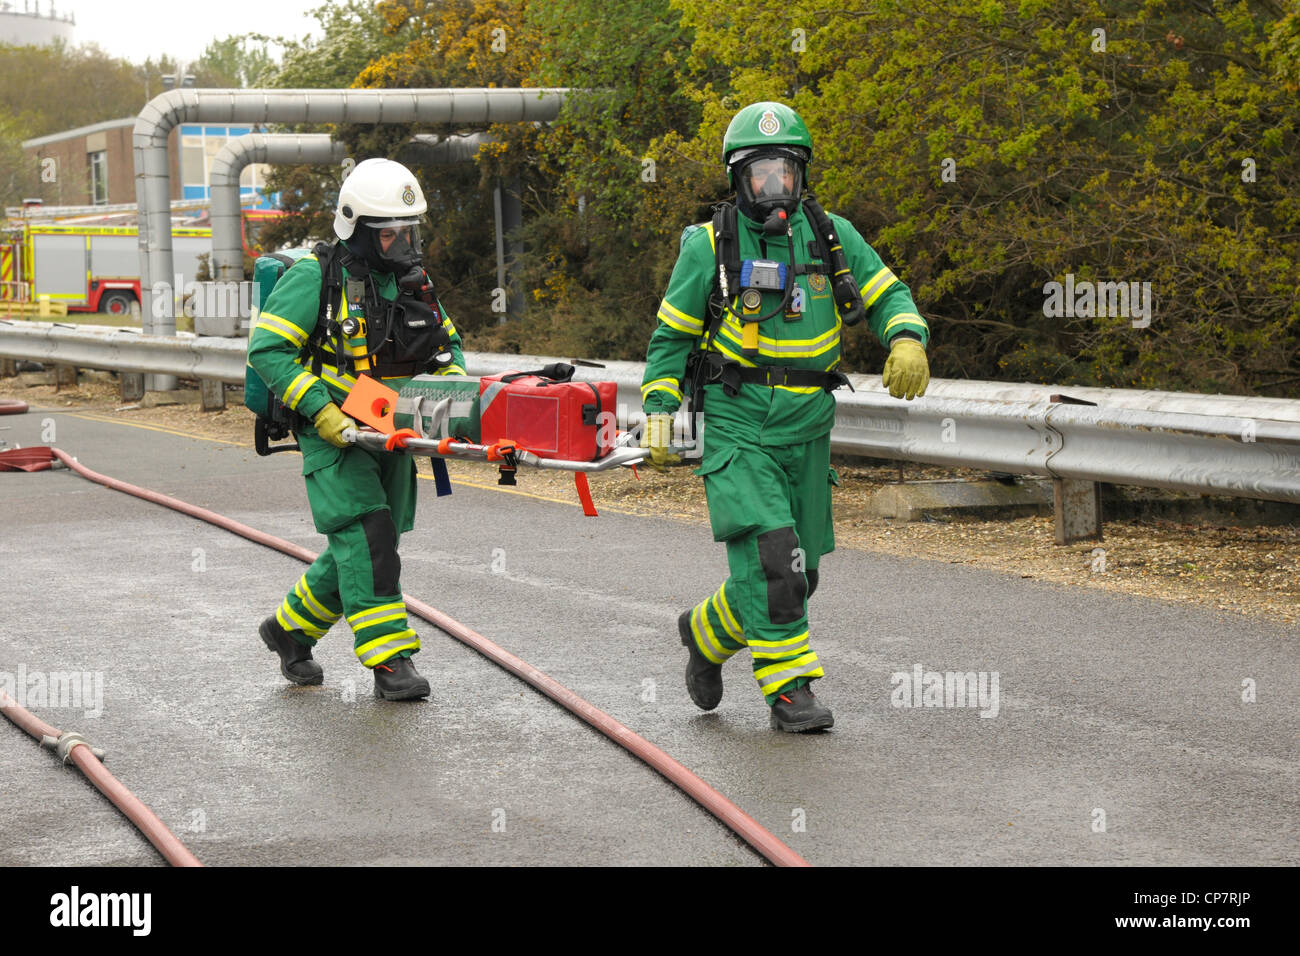 Paramedics carry a stretcher during a major incident exercise - Stock Image